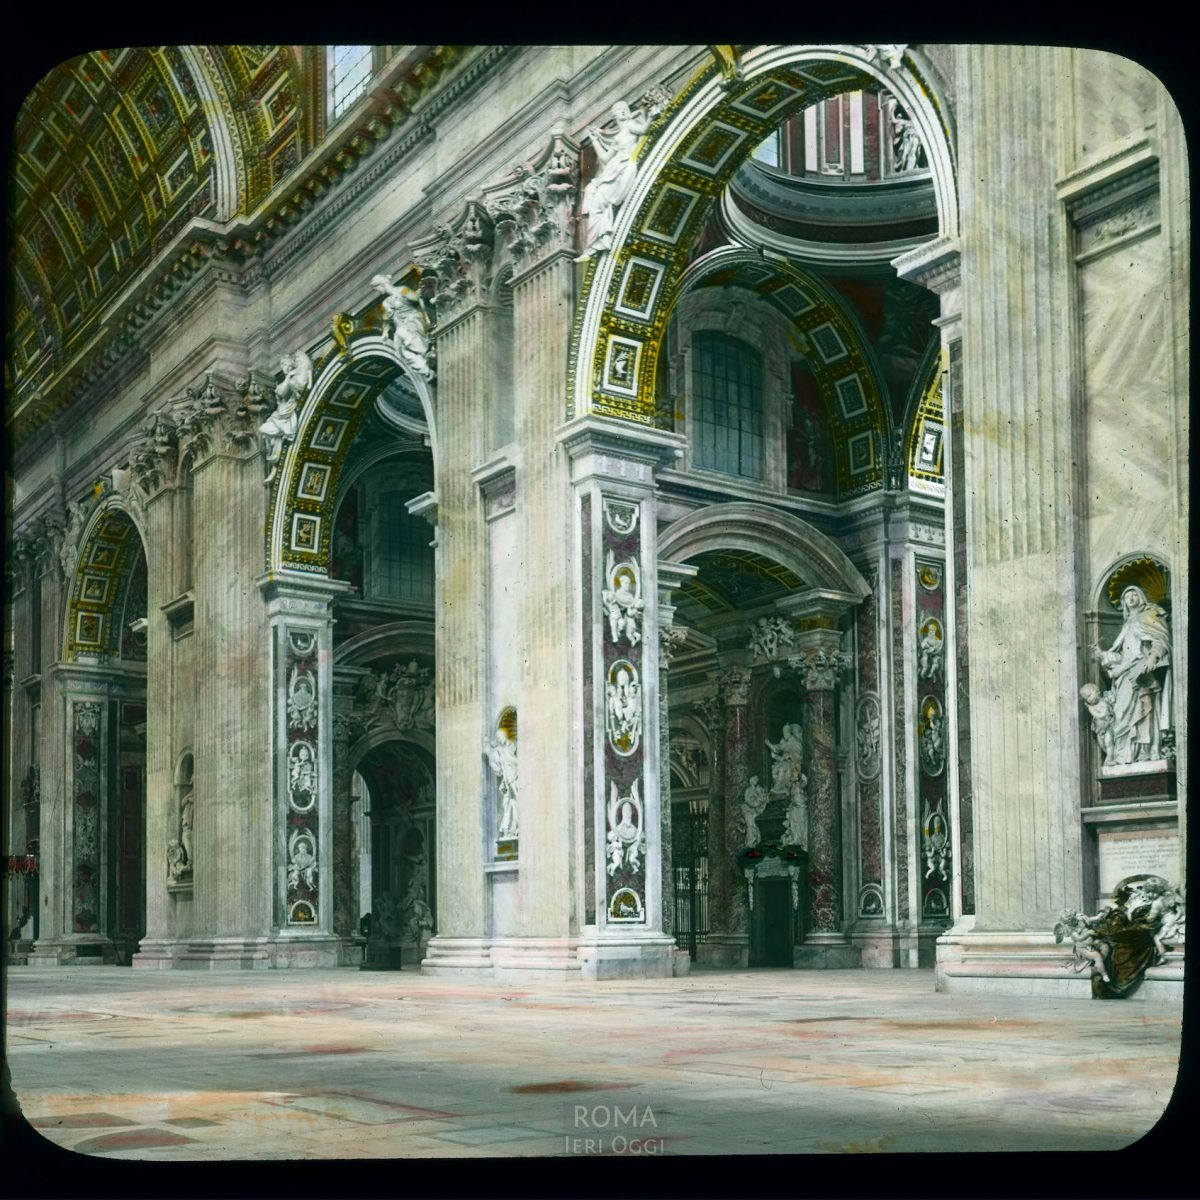 Vatican City. St. Peter's Basilica: interior, right aisle View in tinted lantern slide, ca. 1919-1938. The basilica dates from ca. 1506-1626.